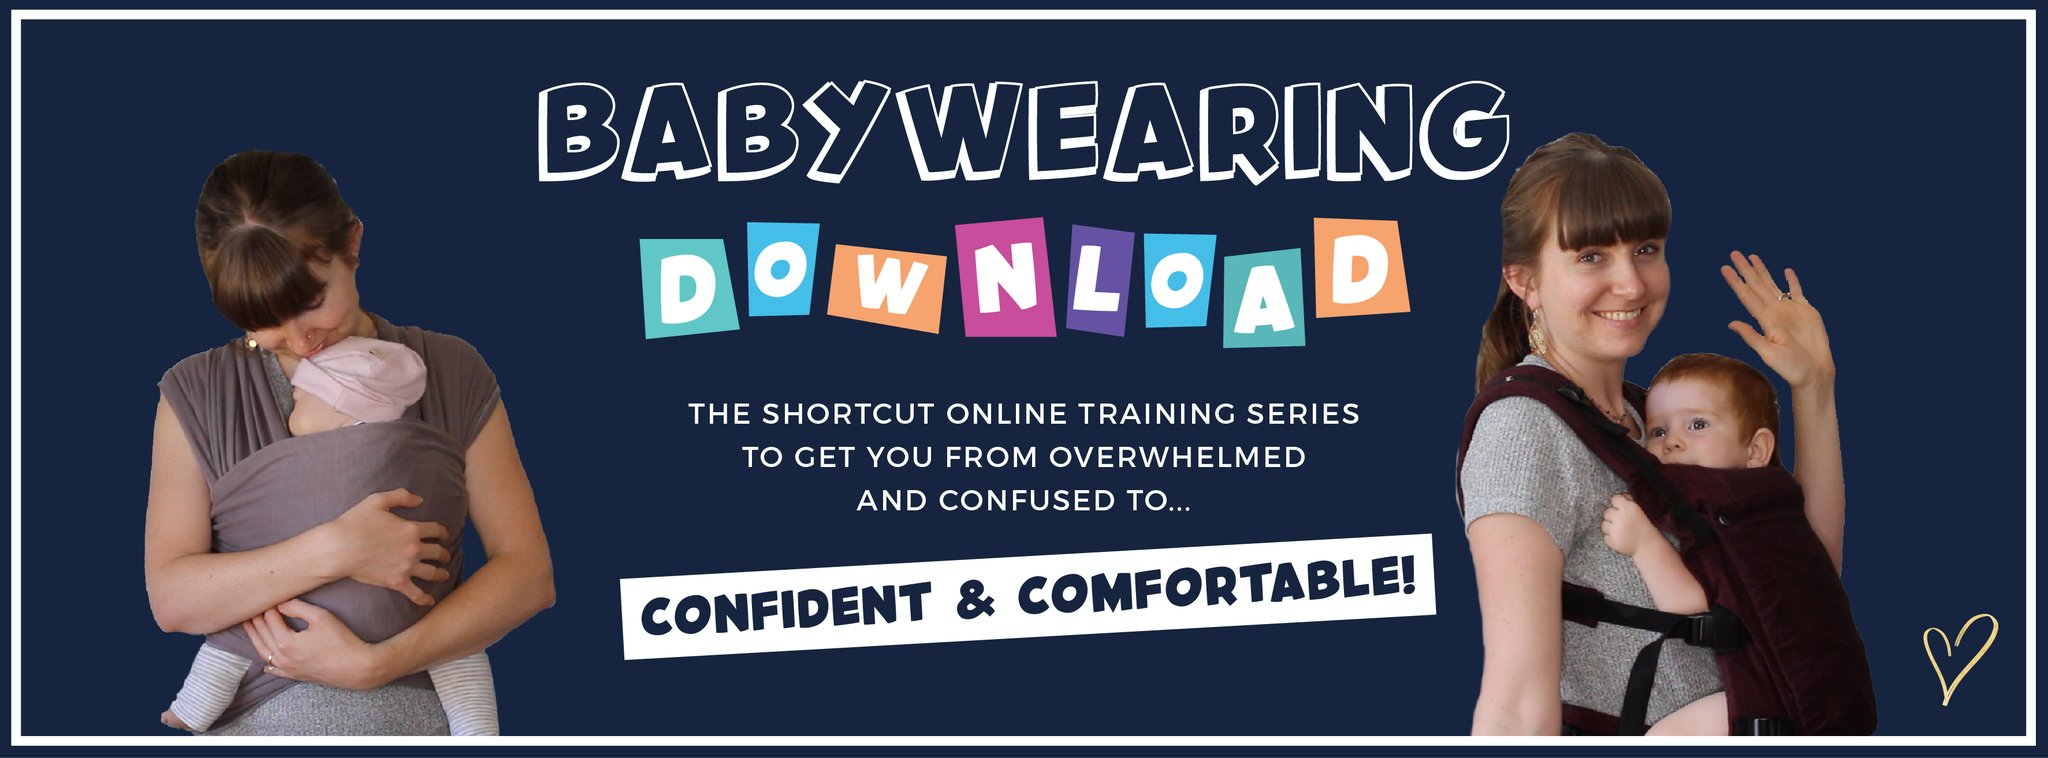 babywearing education babywearing consultant information on baby carriers